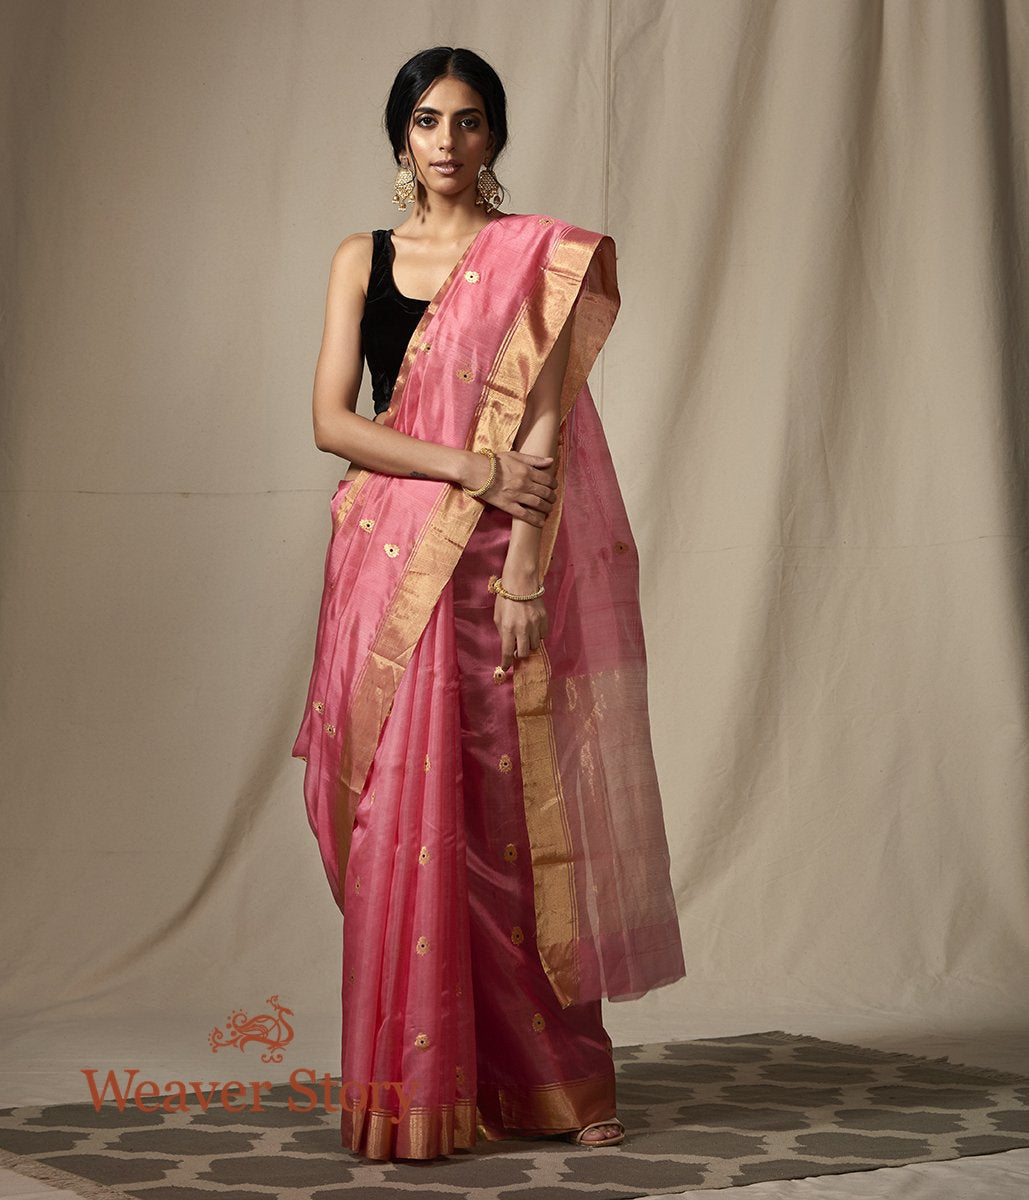 Rose Pink chanderi silk saree with gold zari boota with meenakari